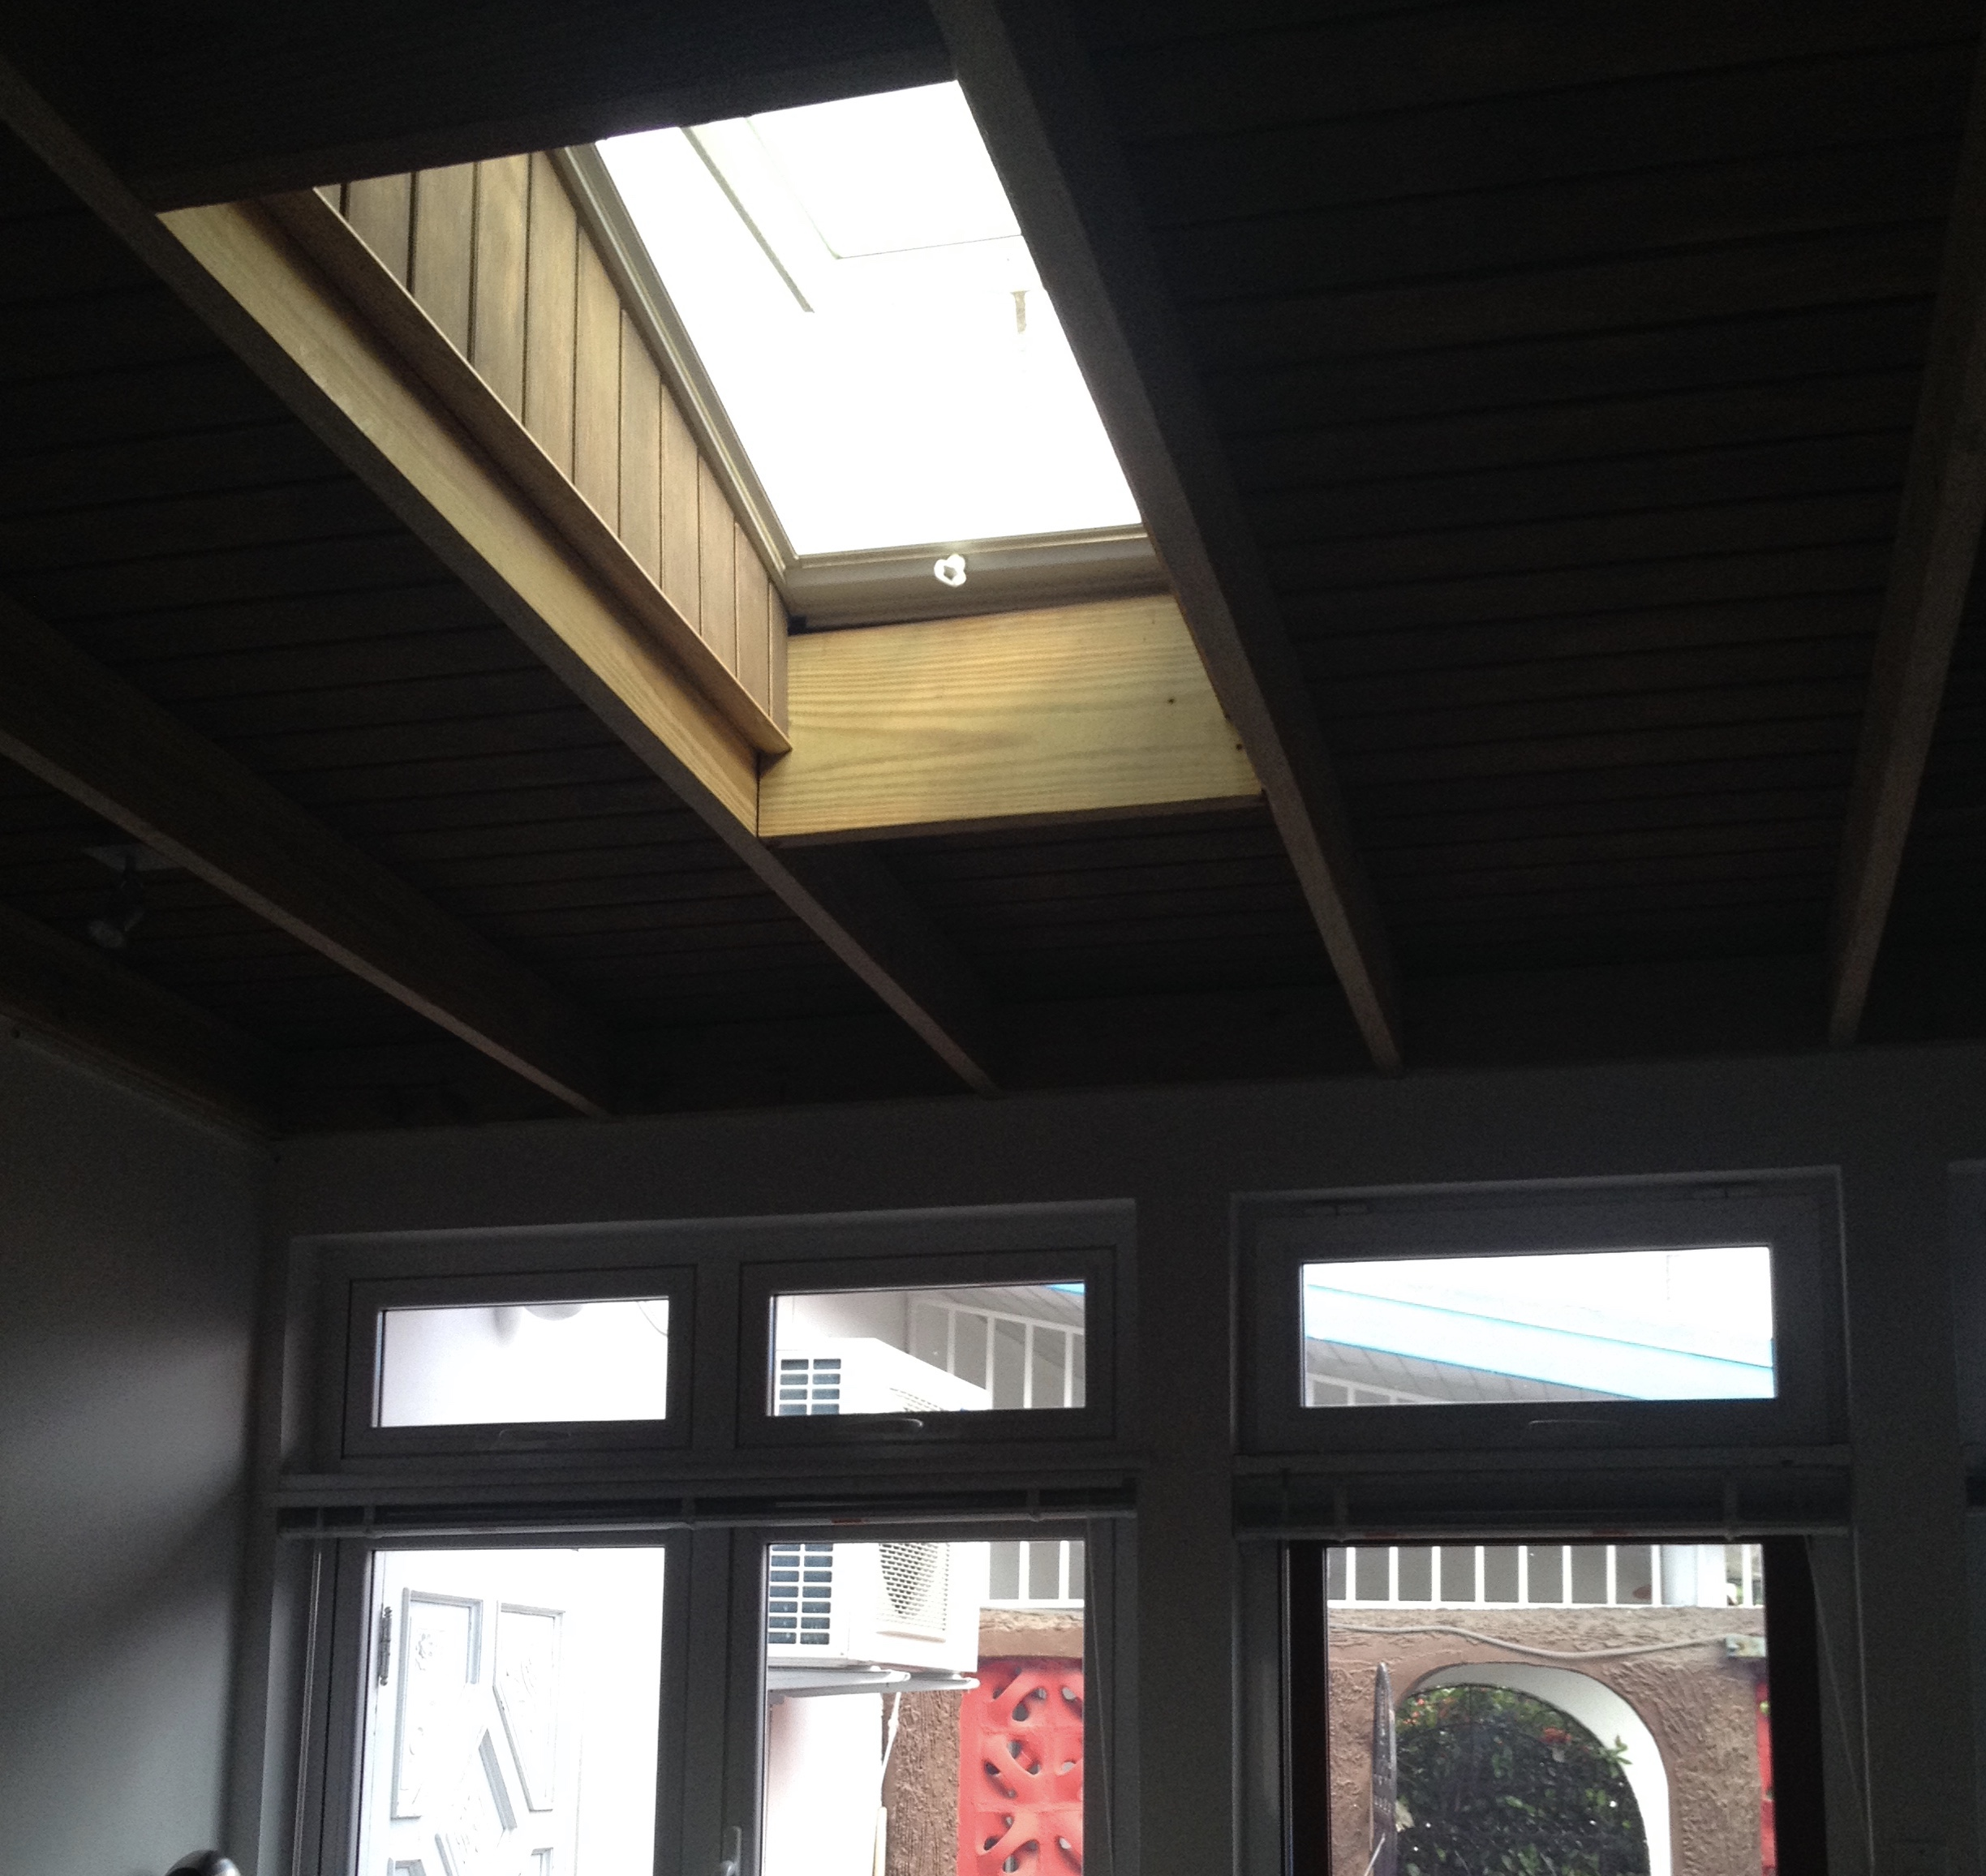 retractable skylight in west wing